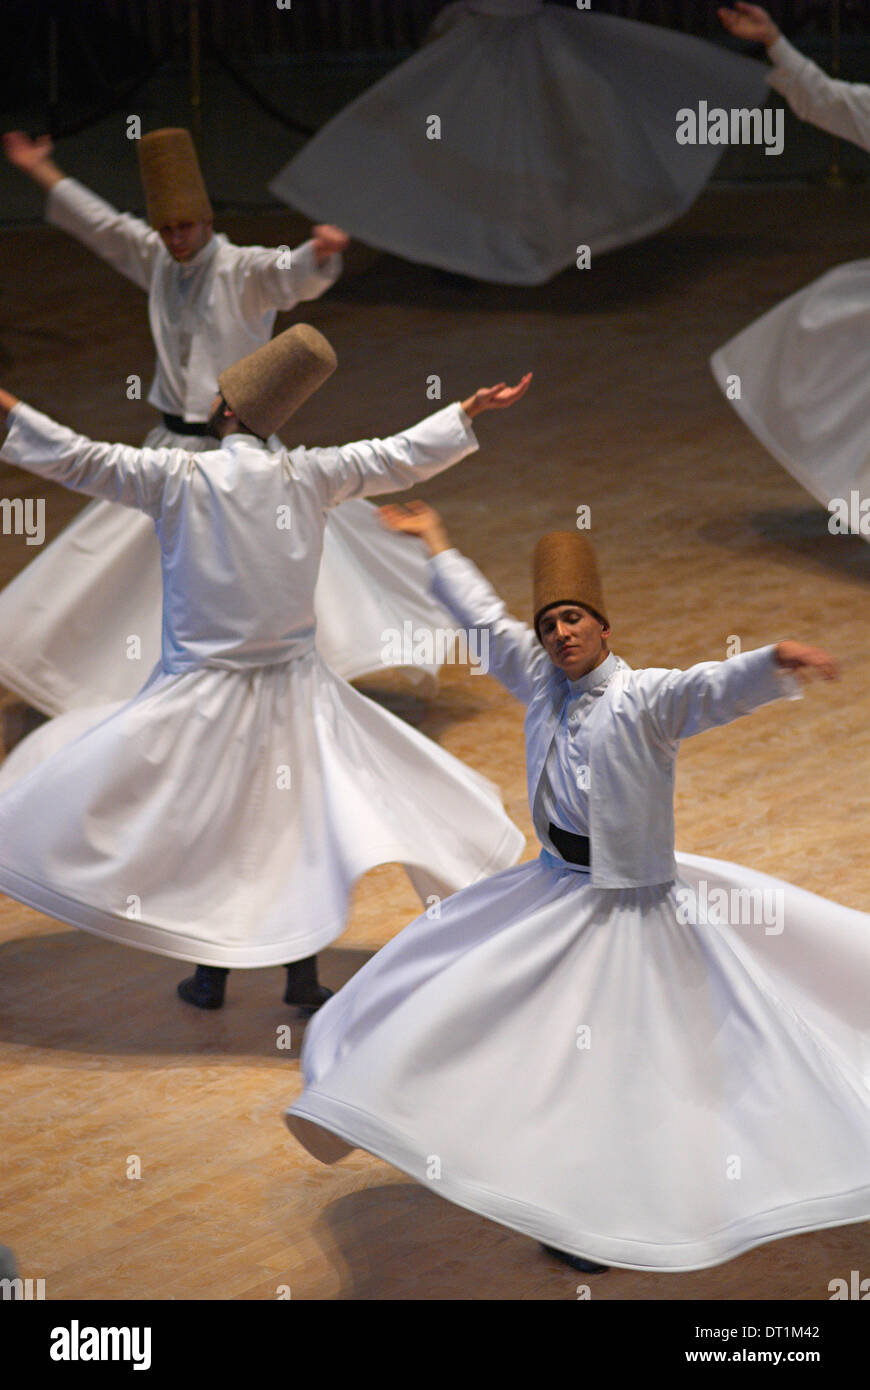 Whirling Dervishes at the Dervishes Festival, Konya, Central Anatolia, Turkey, Asia Minor, Eurasia - Stock Image